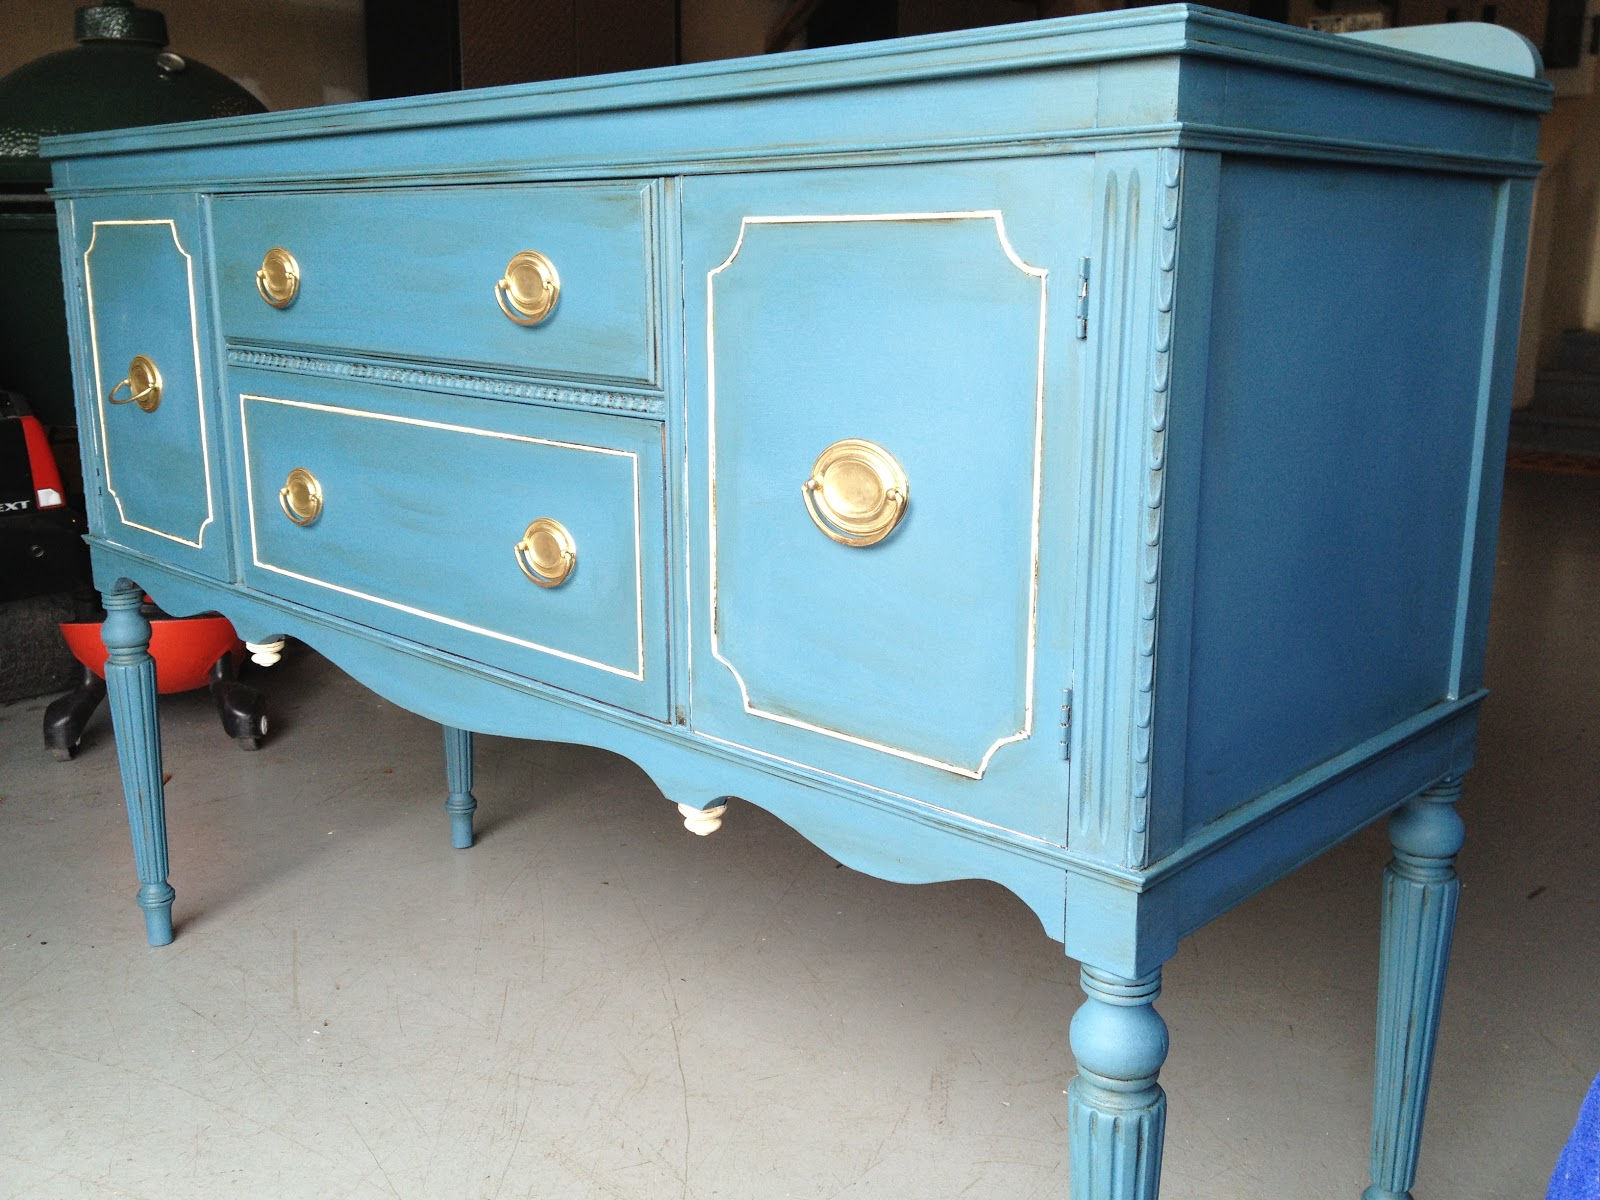 pictures of chalk painted furnitureMy Twig and Twine Nest Gallery of Furniture Makeovers